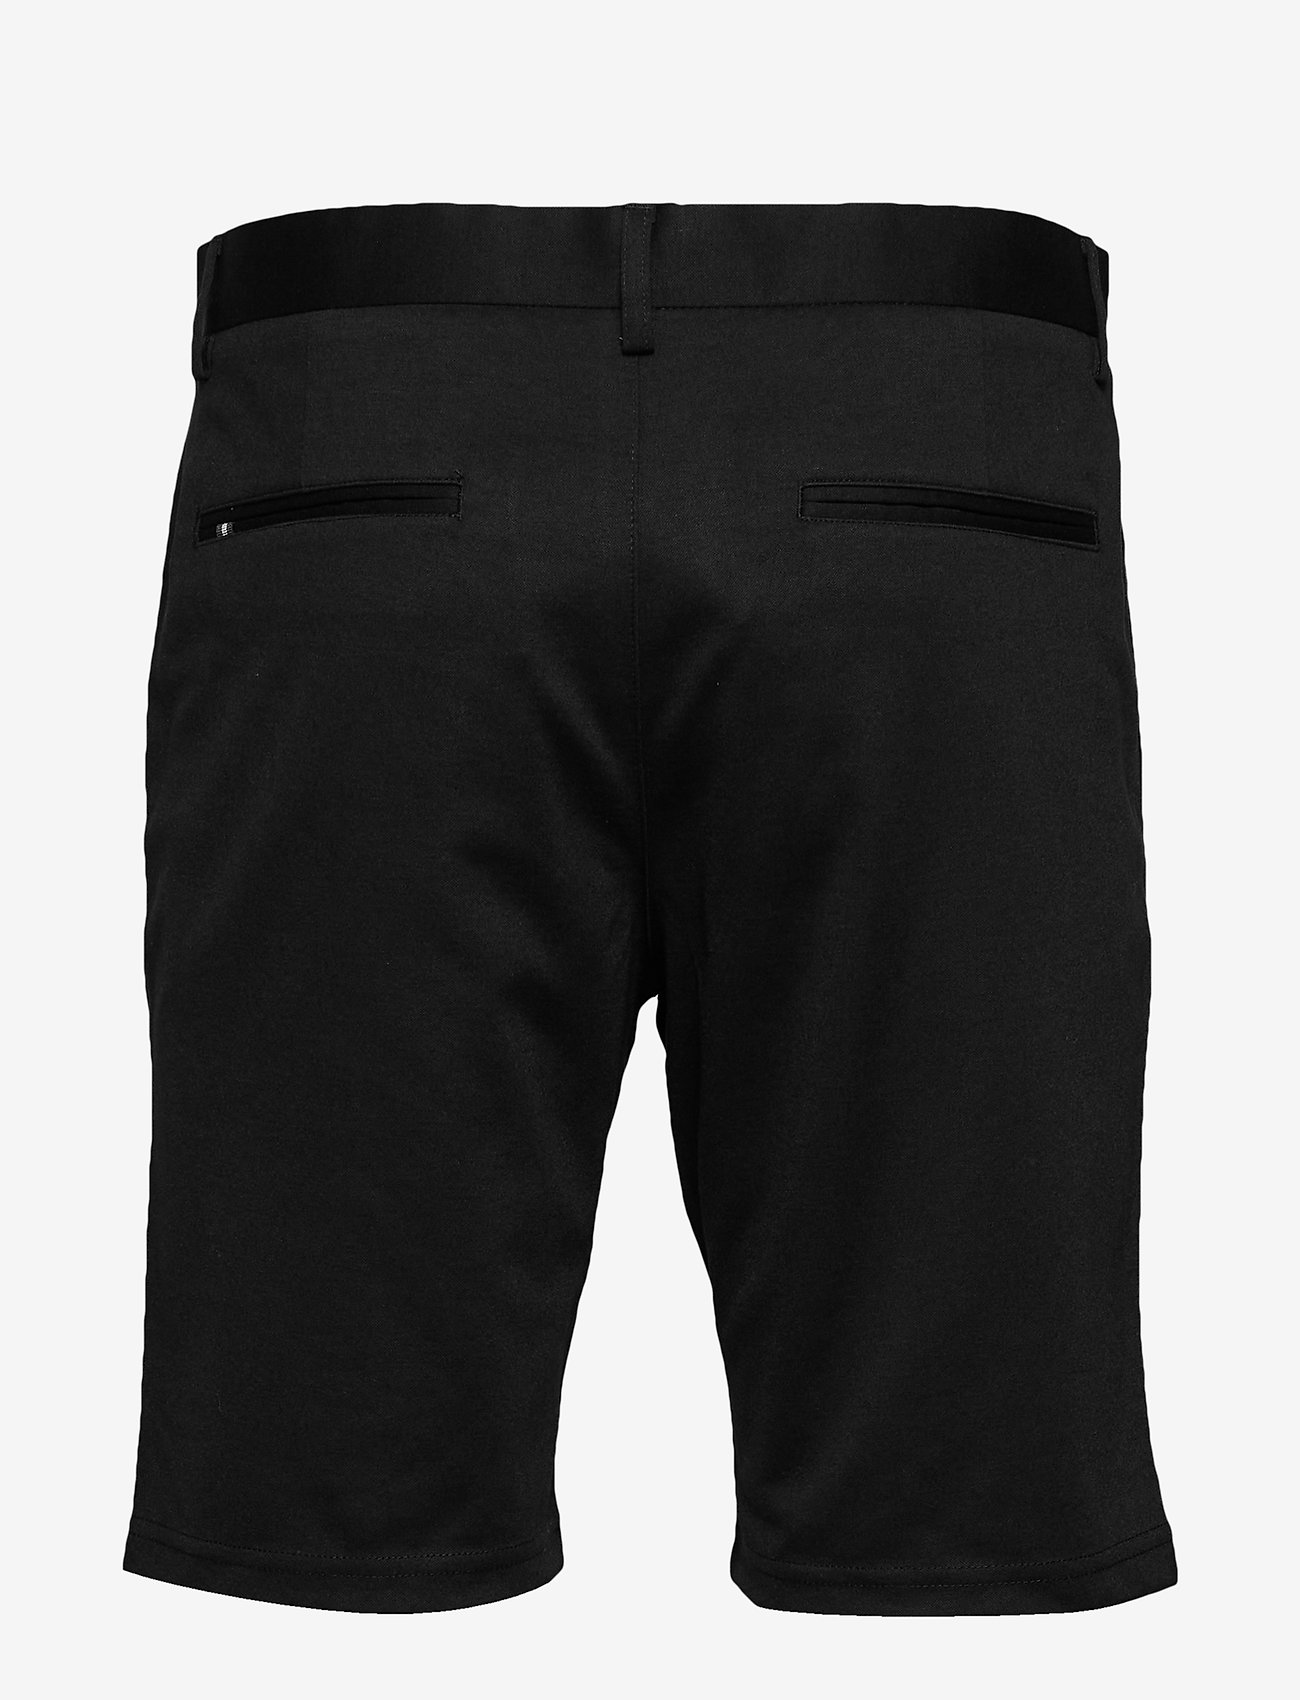 Matinique MApaton SH - Shorts BLACK - Menn Klær